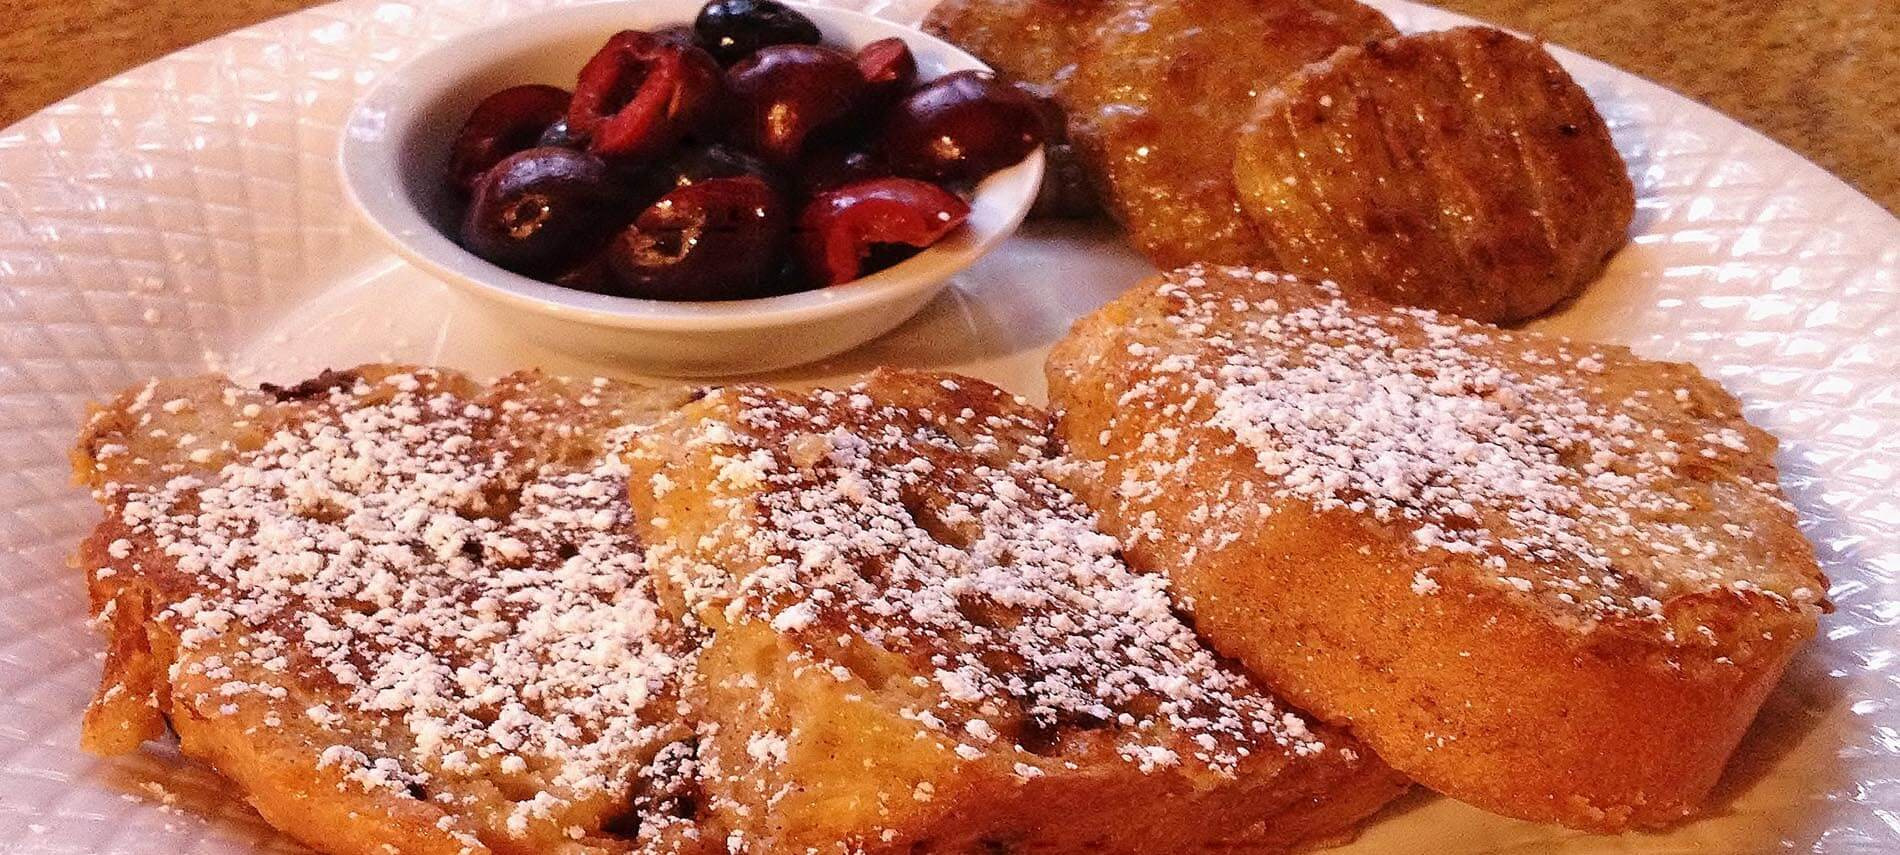 Slices of thick french toast on a white plate with a berry compote on the side,